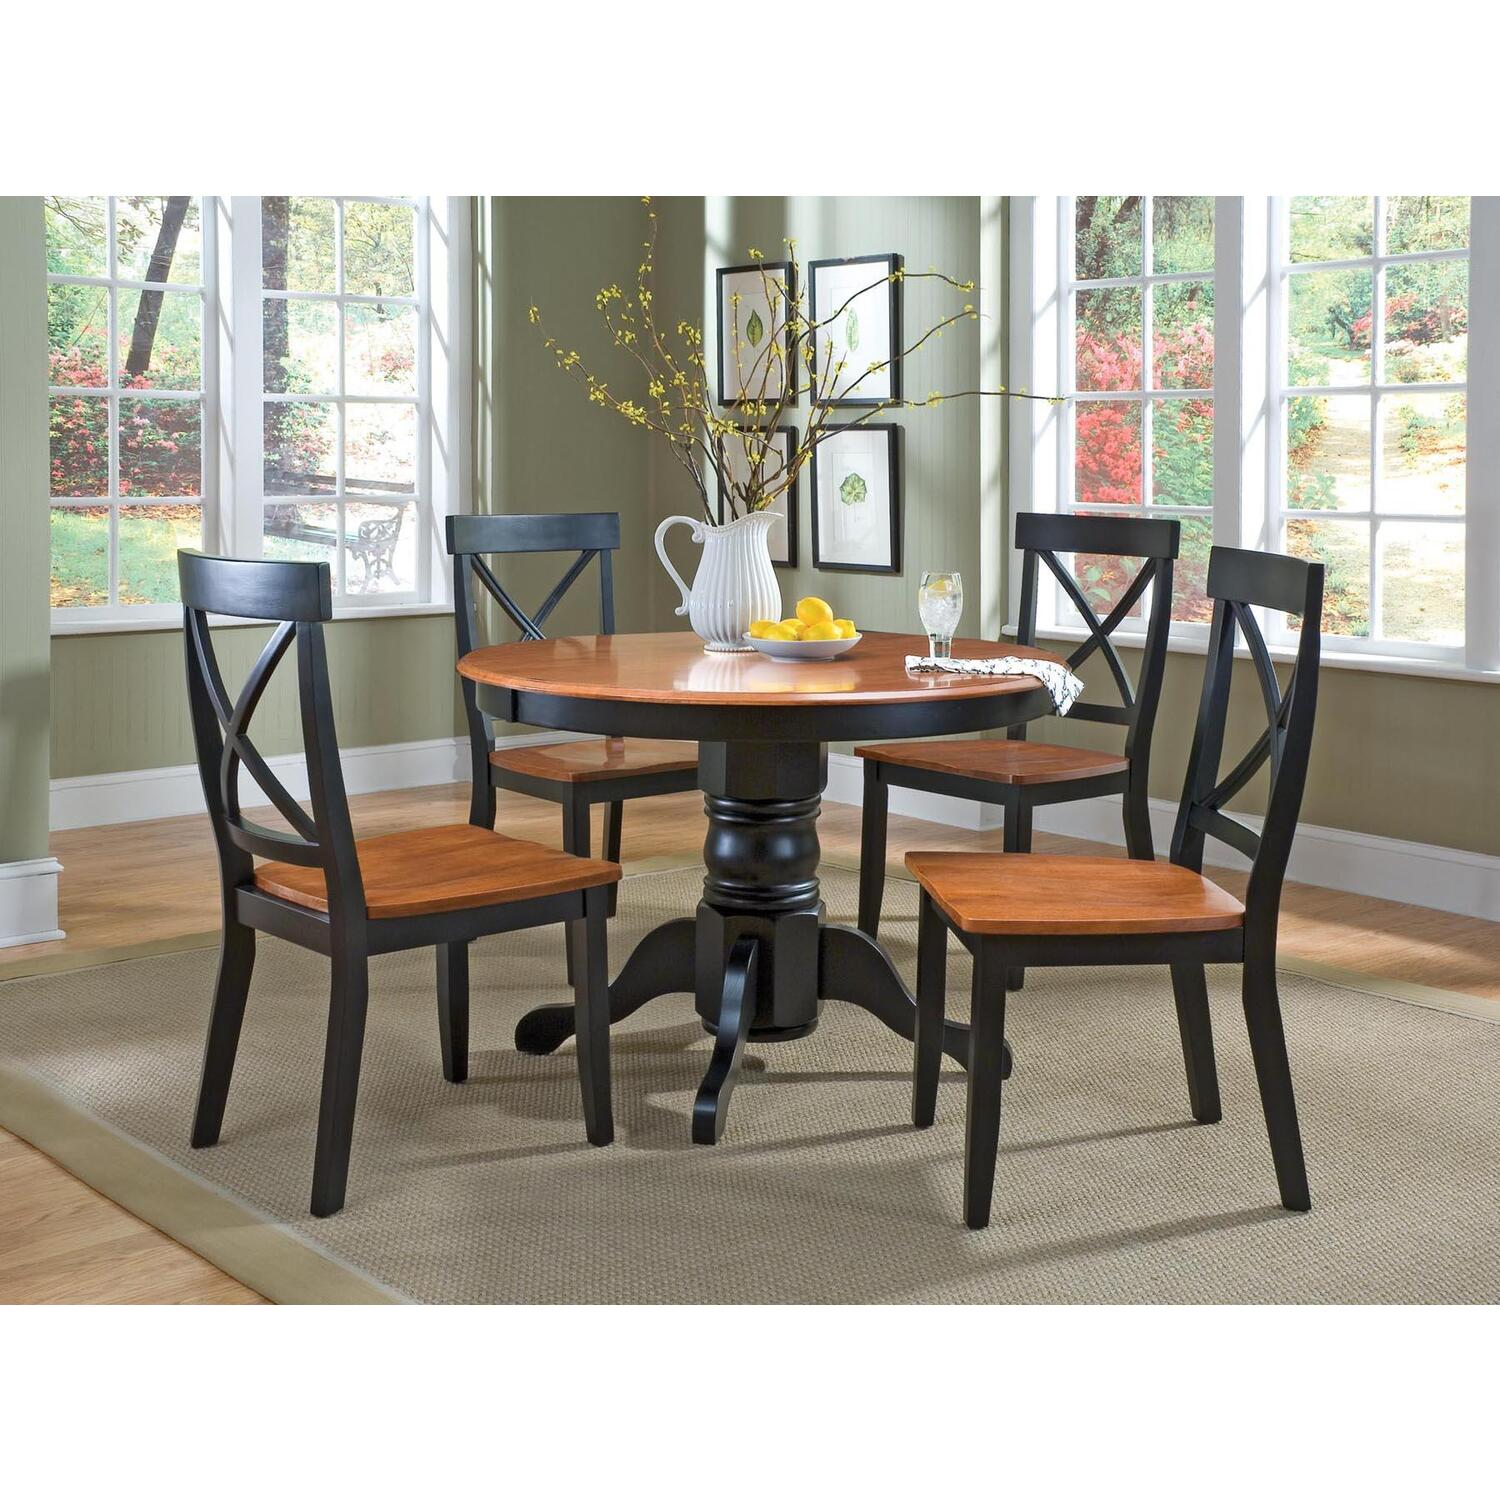 Home Styles 5 Piece Round Pedestal Dining Set By OJ Commerce